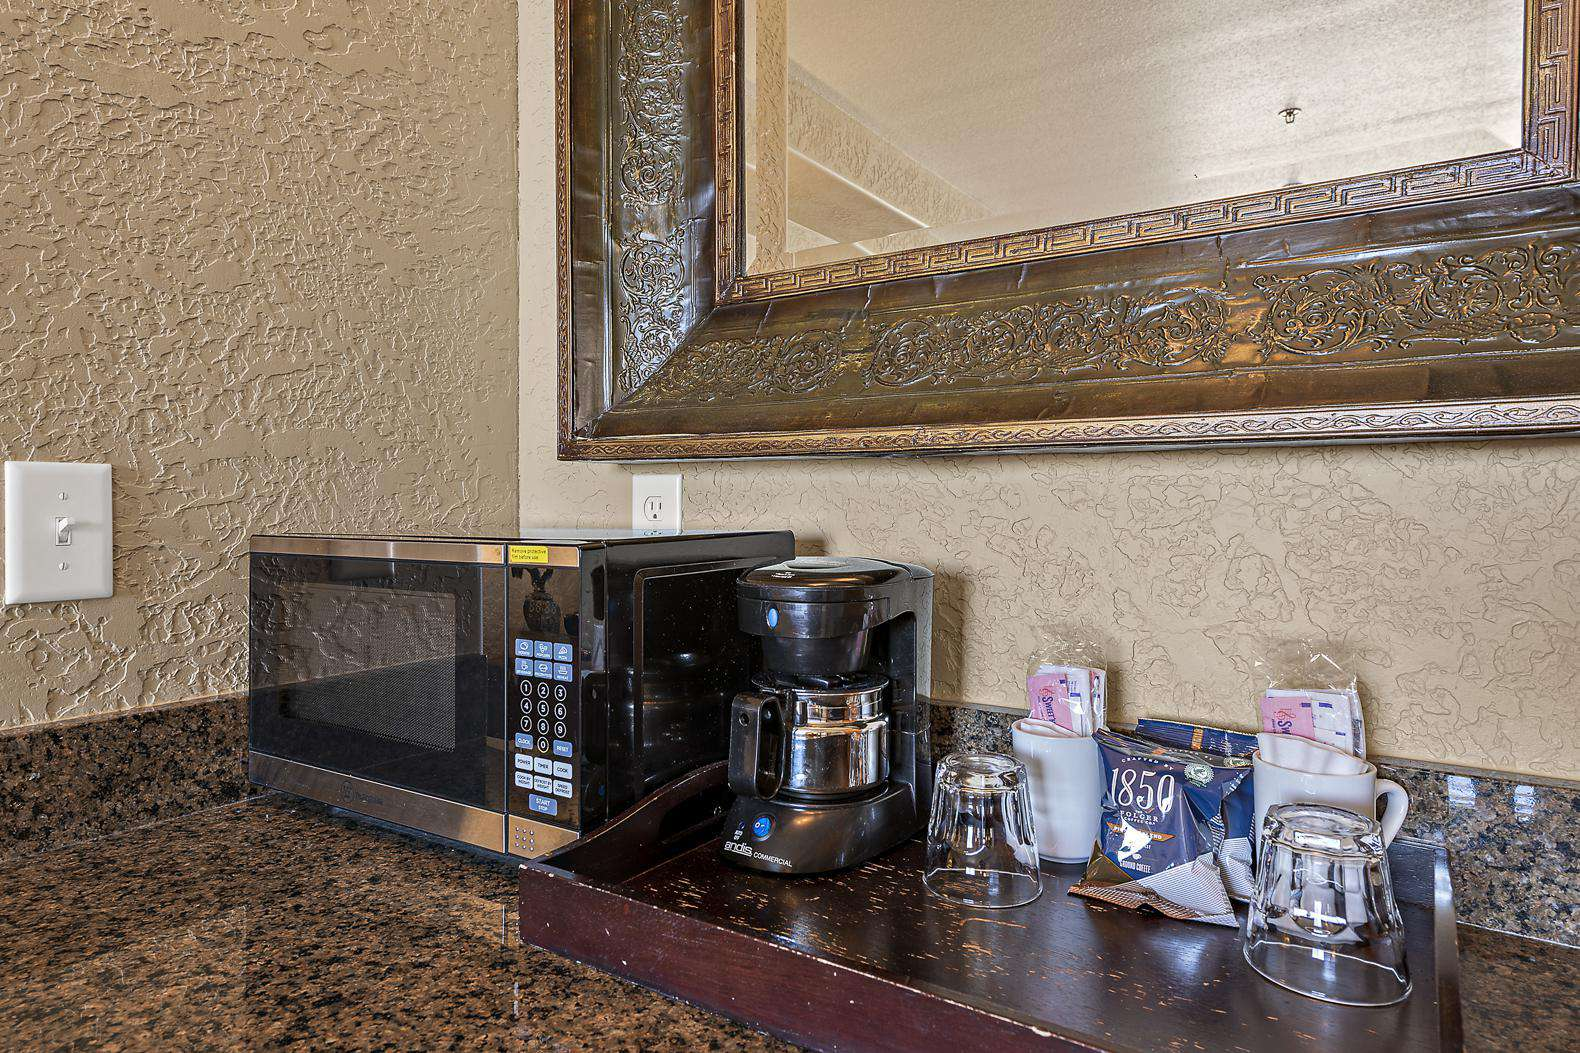 Master Bedroom kitchenette with microwave and coffee maker